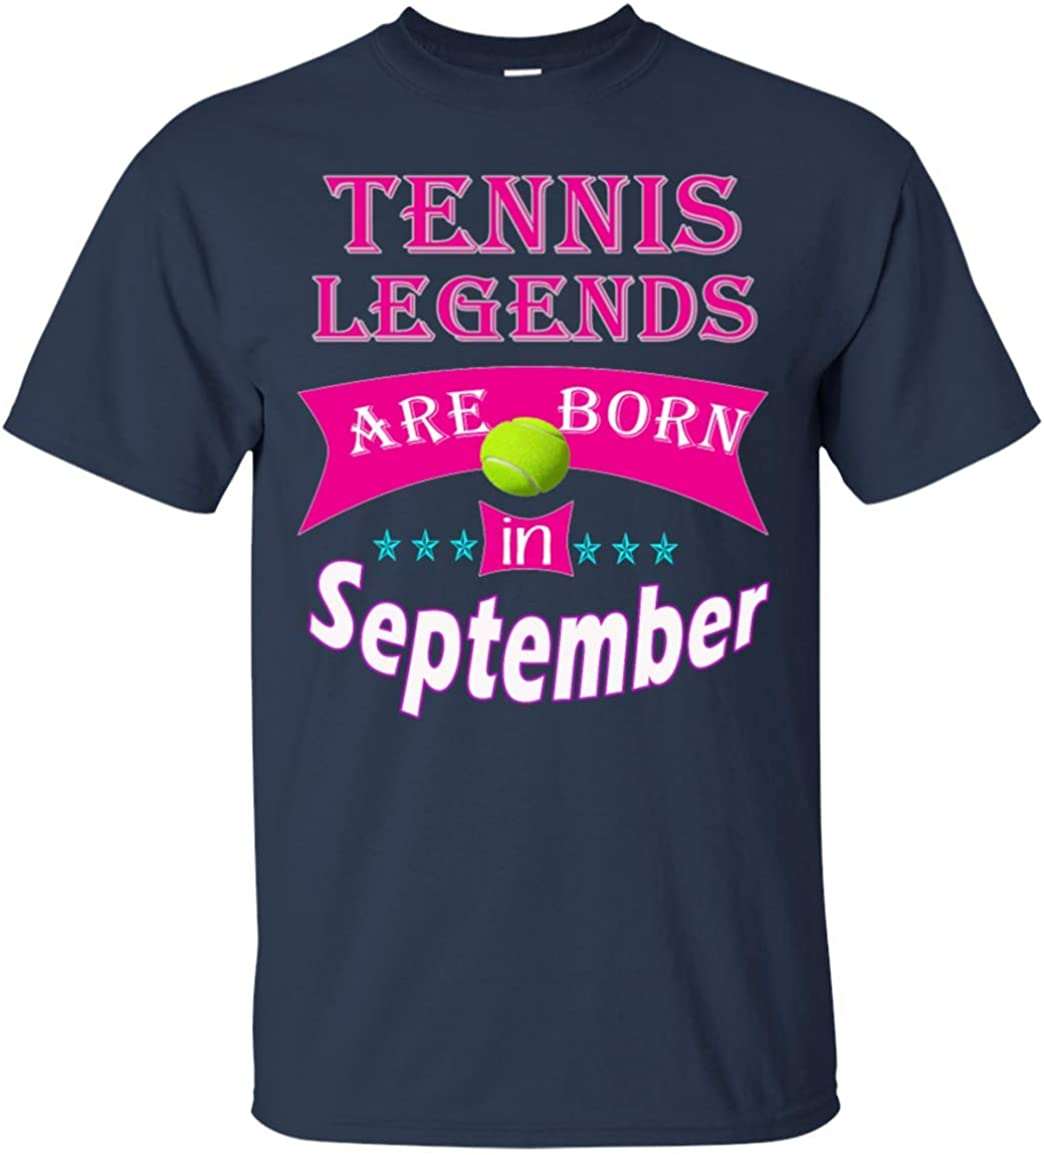 Baby T-shirt Tees for Boys Born to Go Tennis with My Daddy Girls